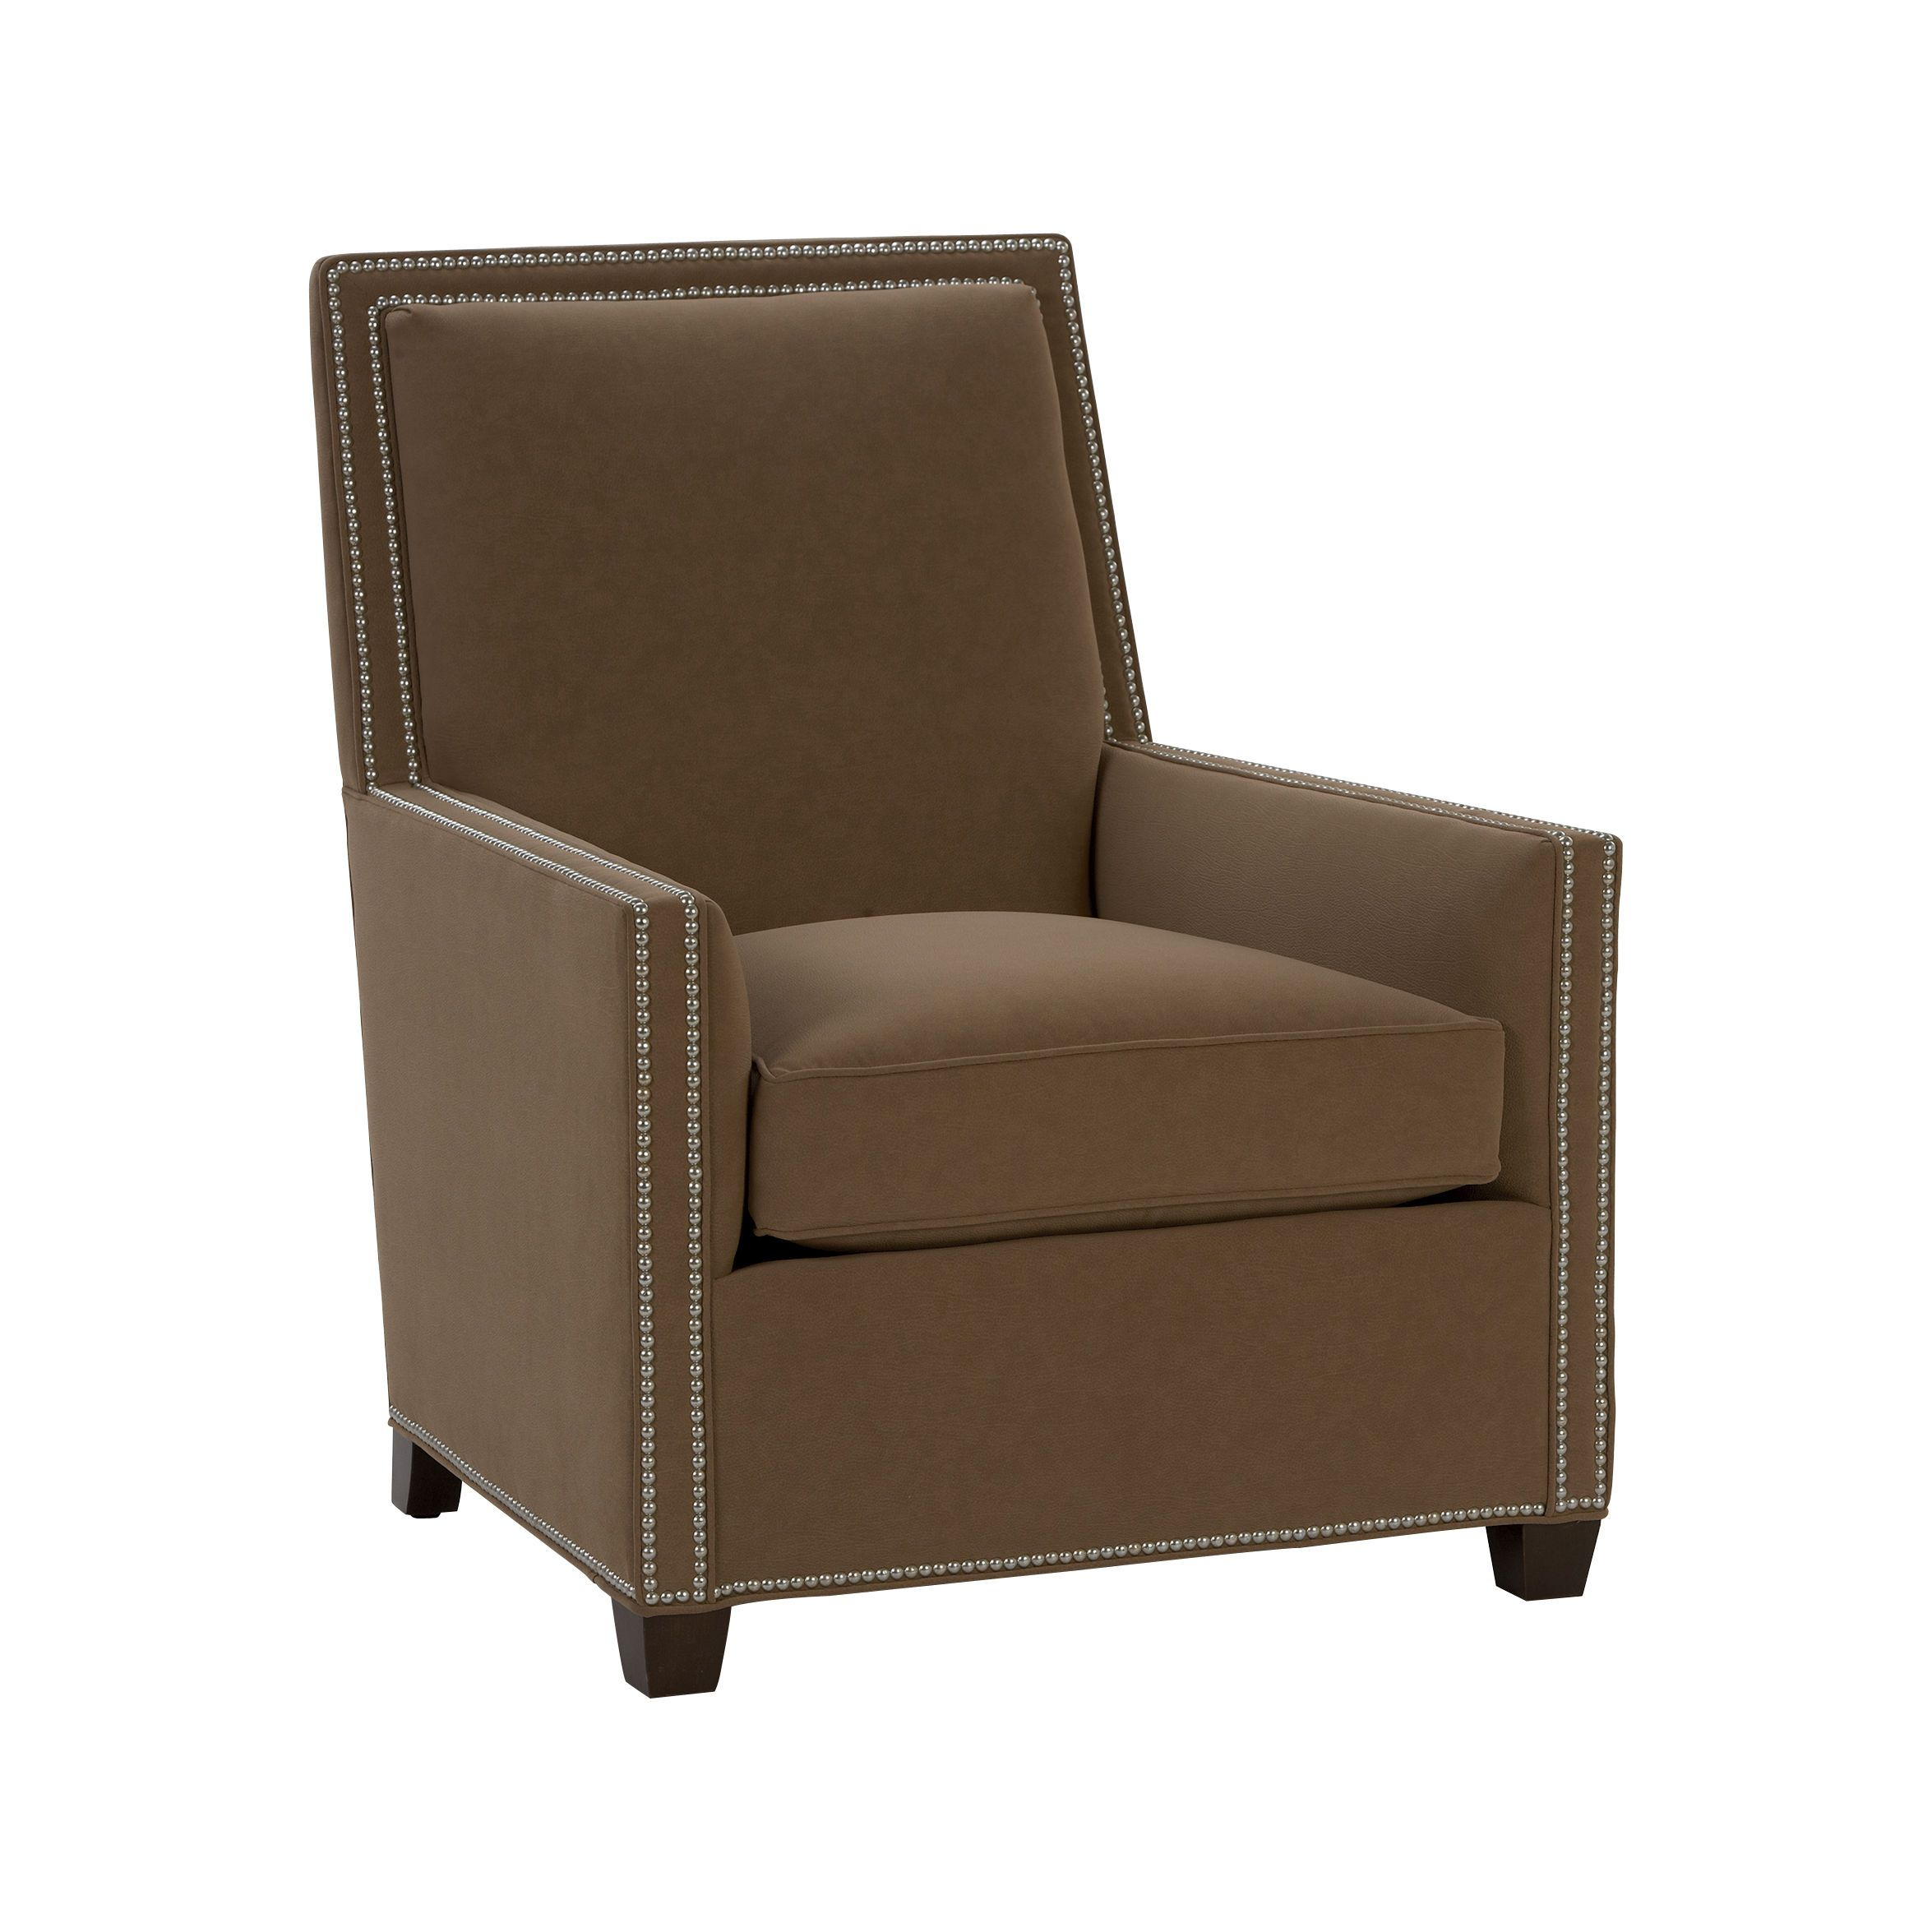 Randall Chair   Ethan Allen US Fabric $969, Leather $1600, Leather Recliner  $2000